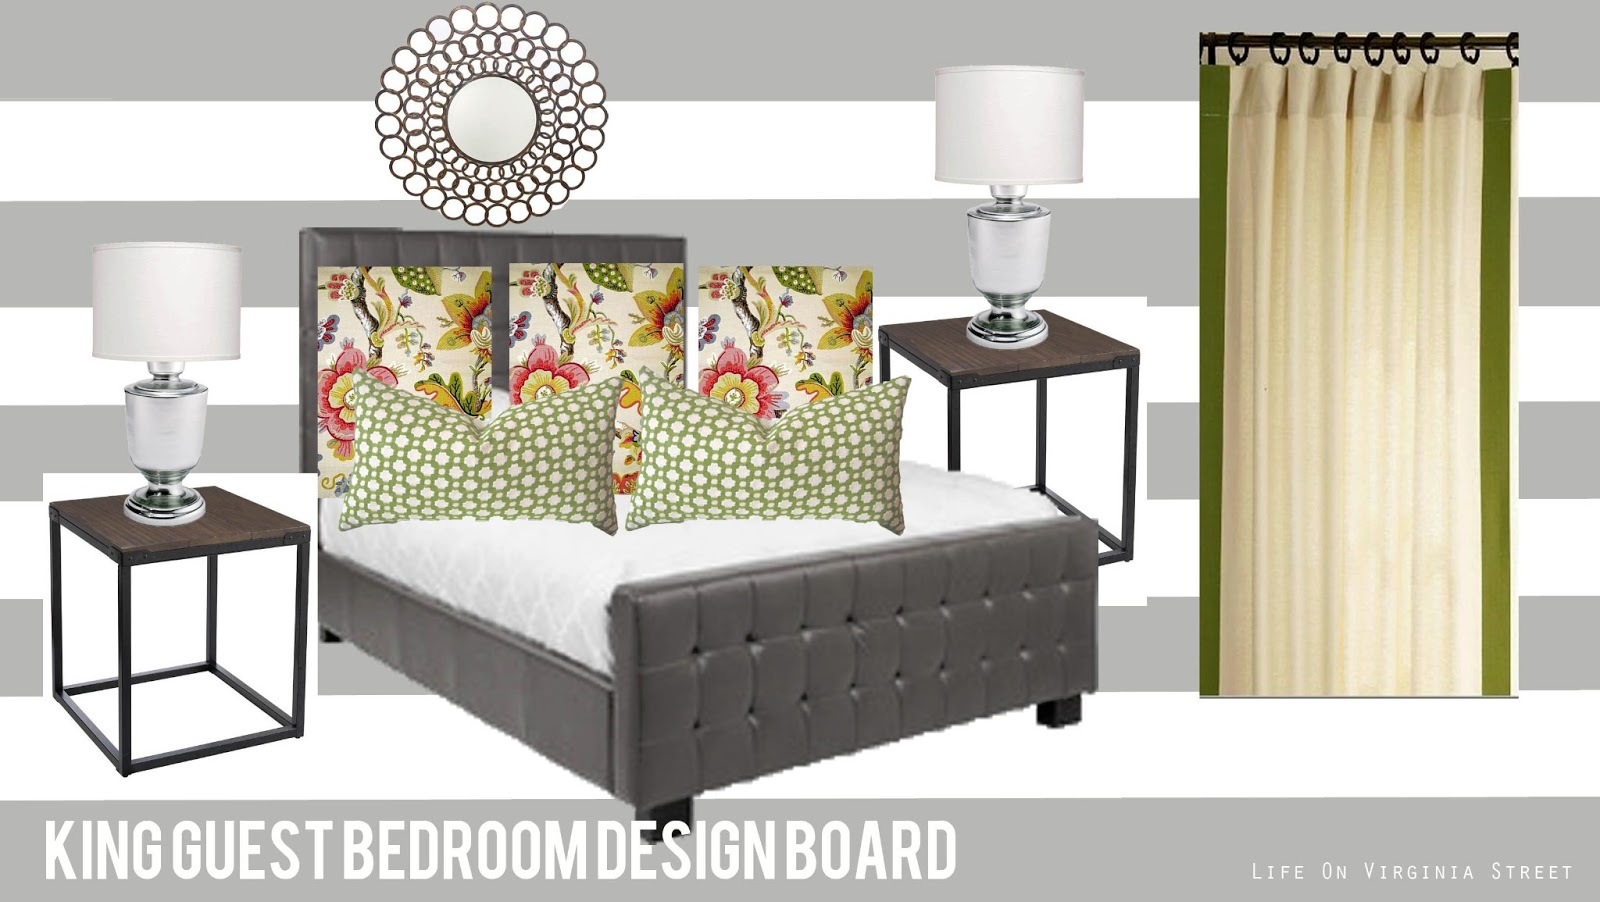 King Guest Bedroom Design Board | Life On Virginia Street